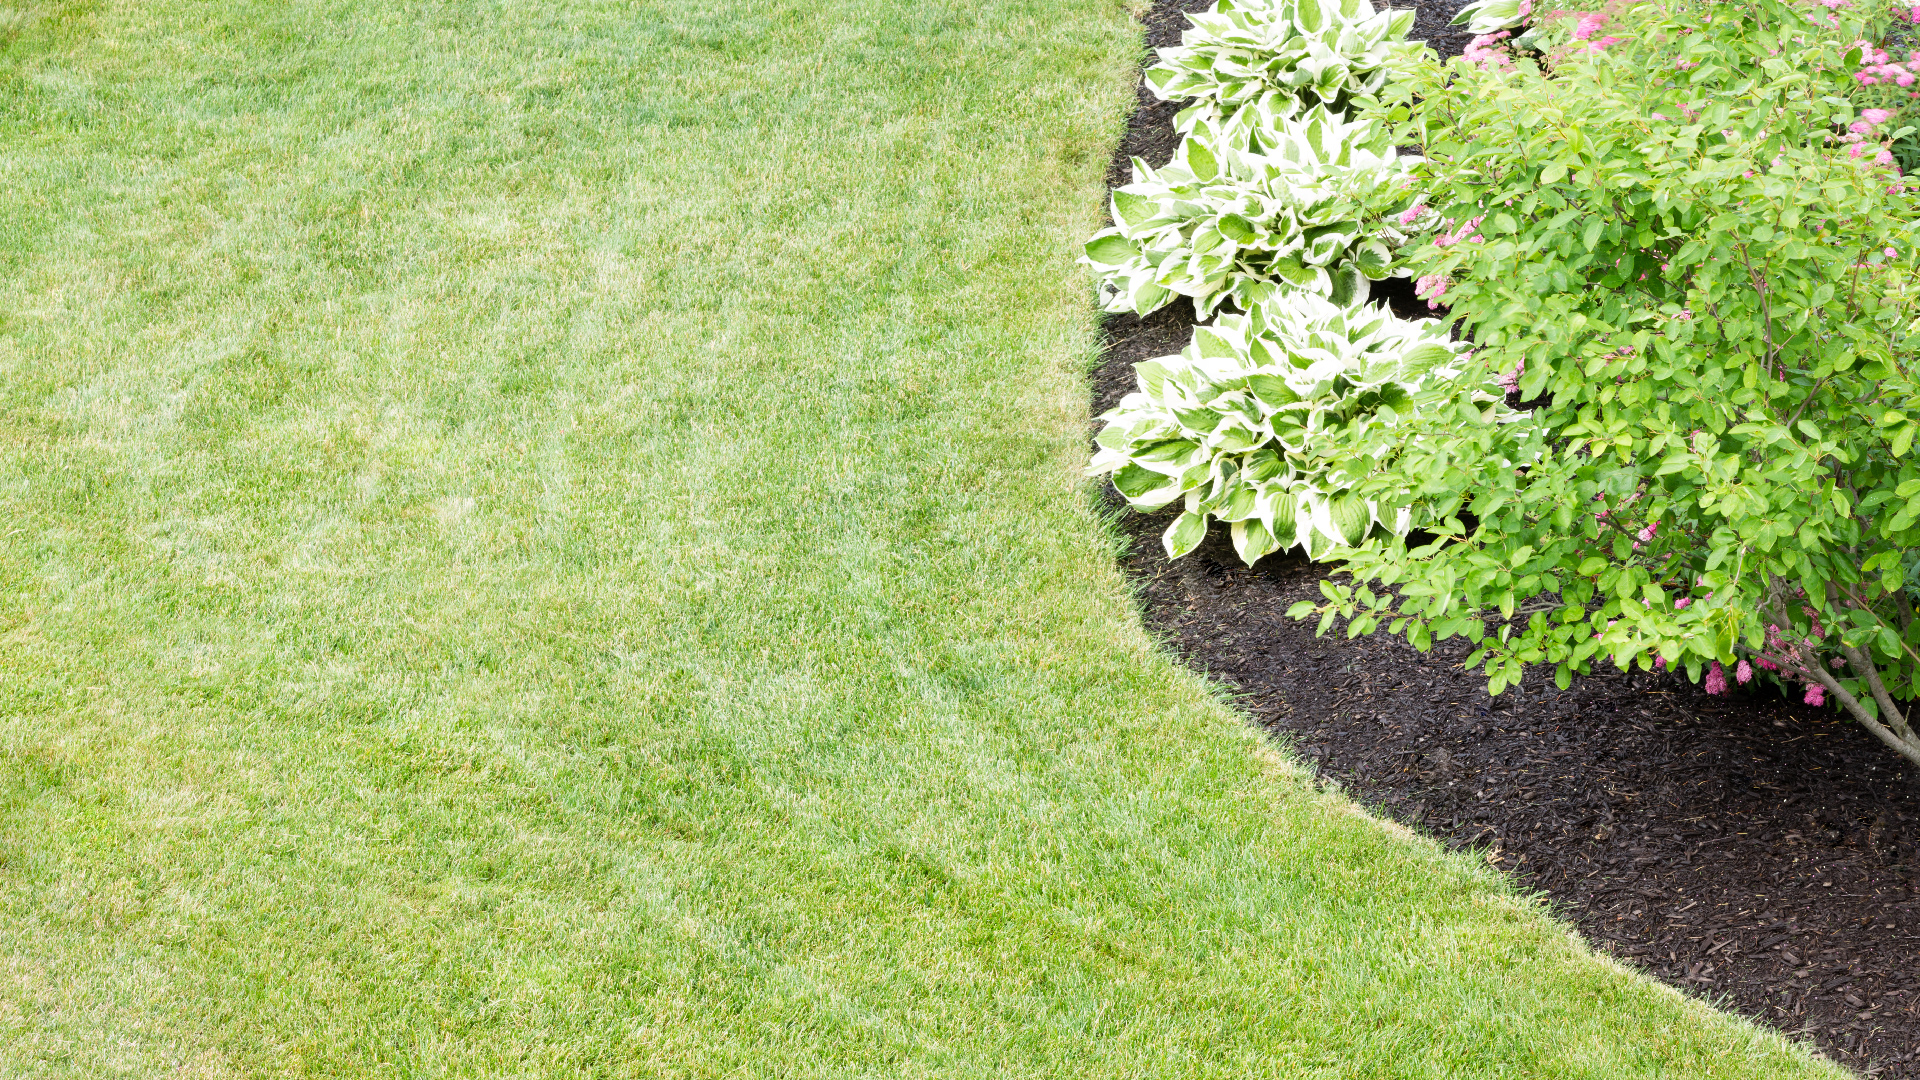 Mulched bed with plants in green grass lawn